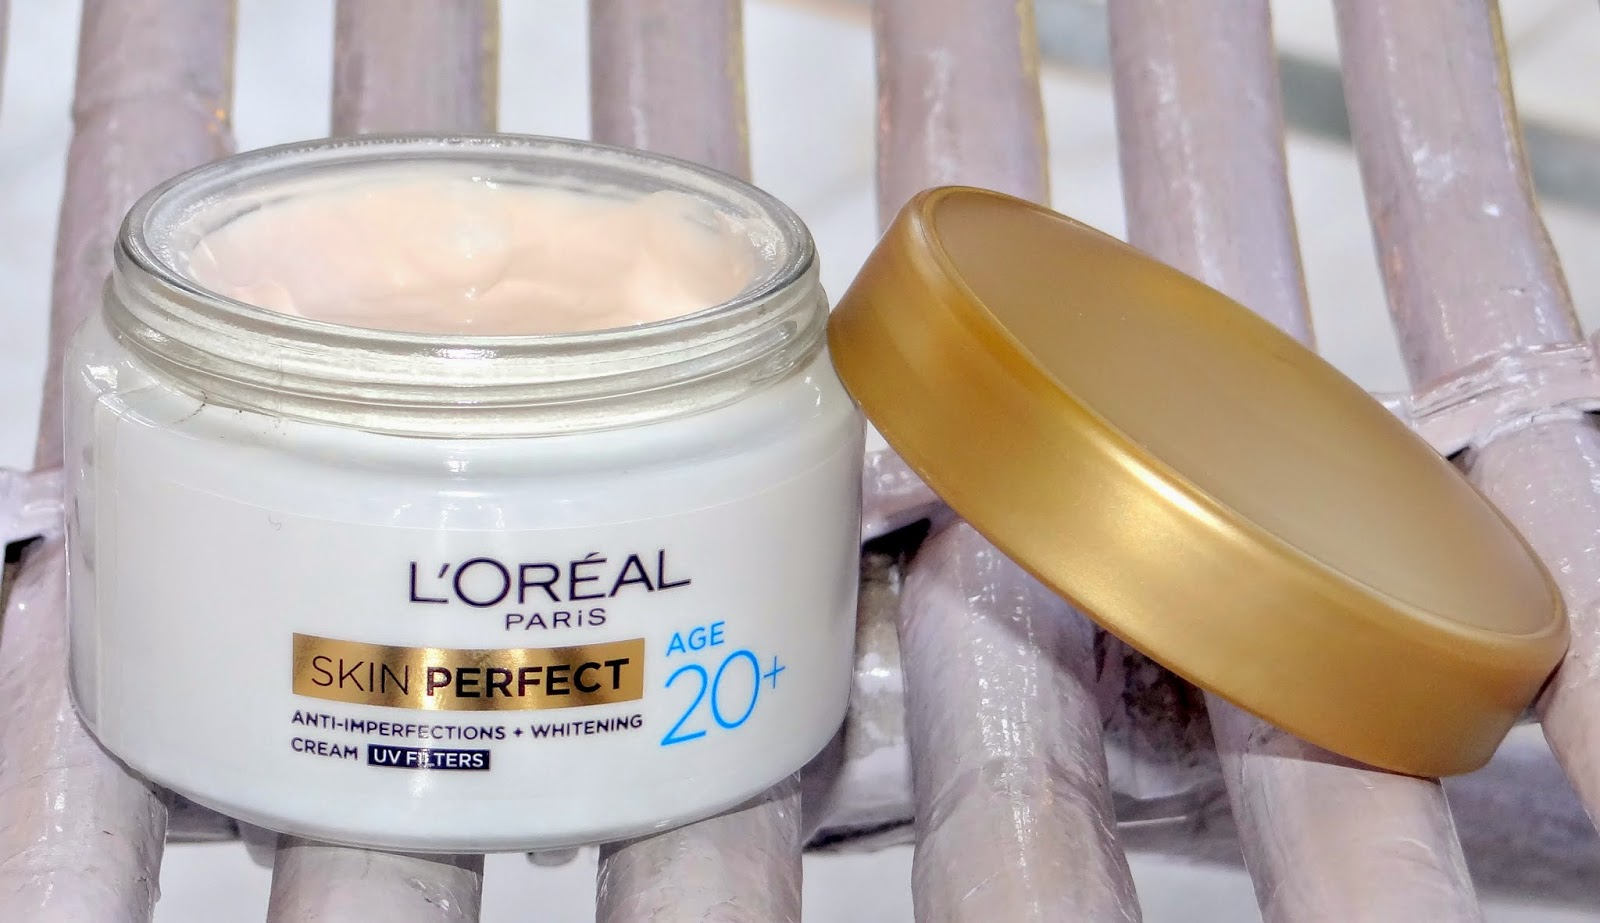 L'Oreal Paris Skin perfect Anti-Imperfections Plus cream for 20+ review